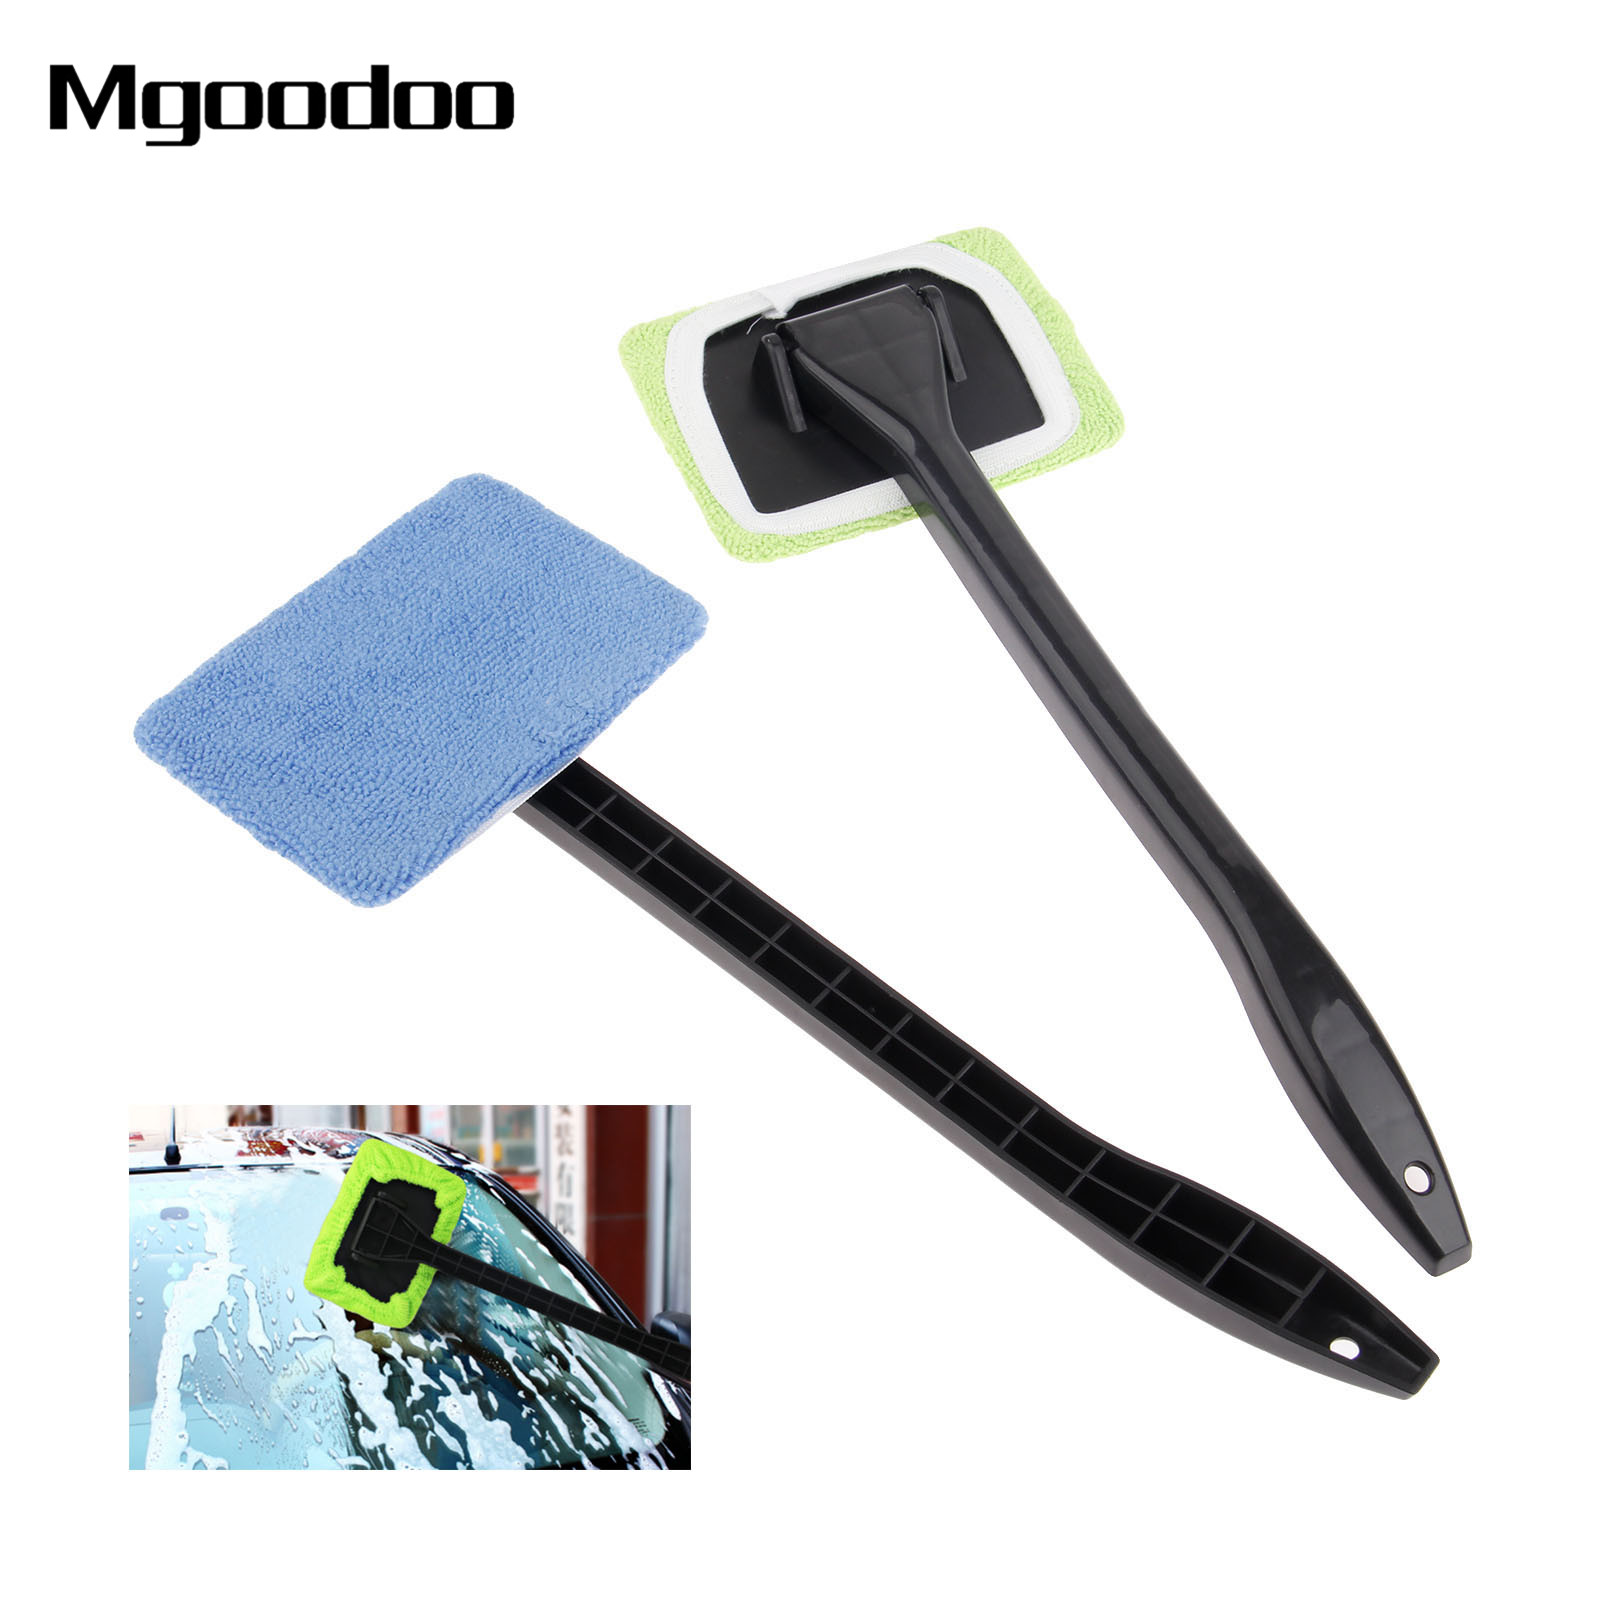 New Microfiber Auto Window Cleaner Windshield Fast Easy Cleaner Brush Handy Washable Cleaning Tool High Quality Cleaning Brushes